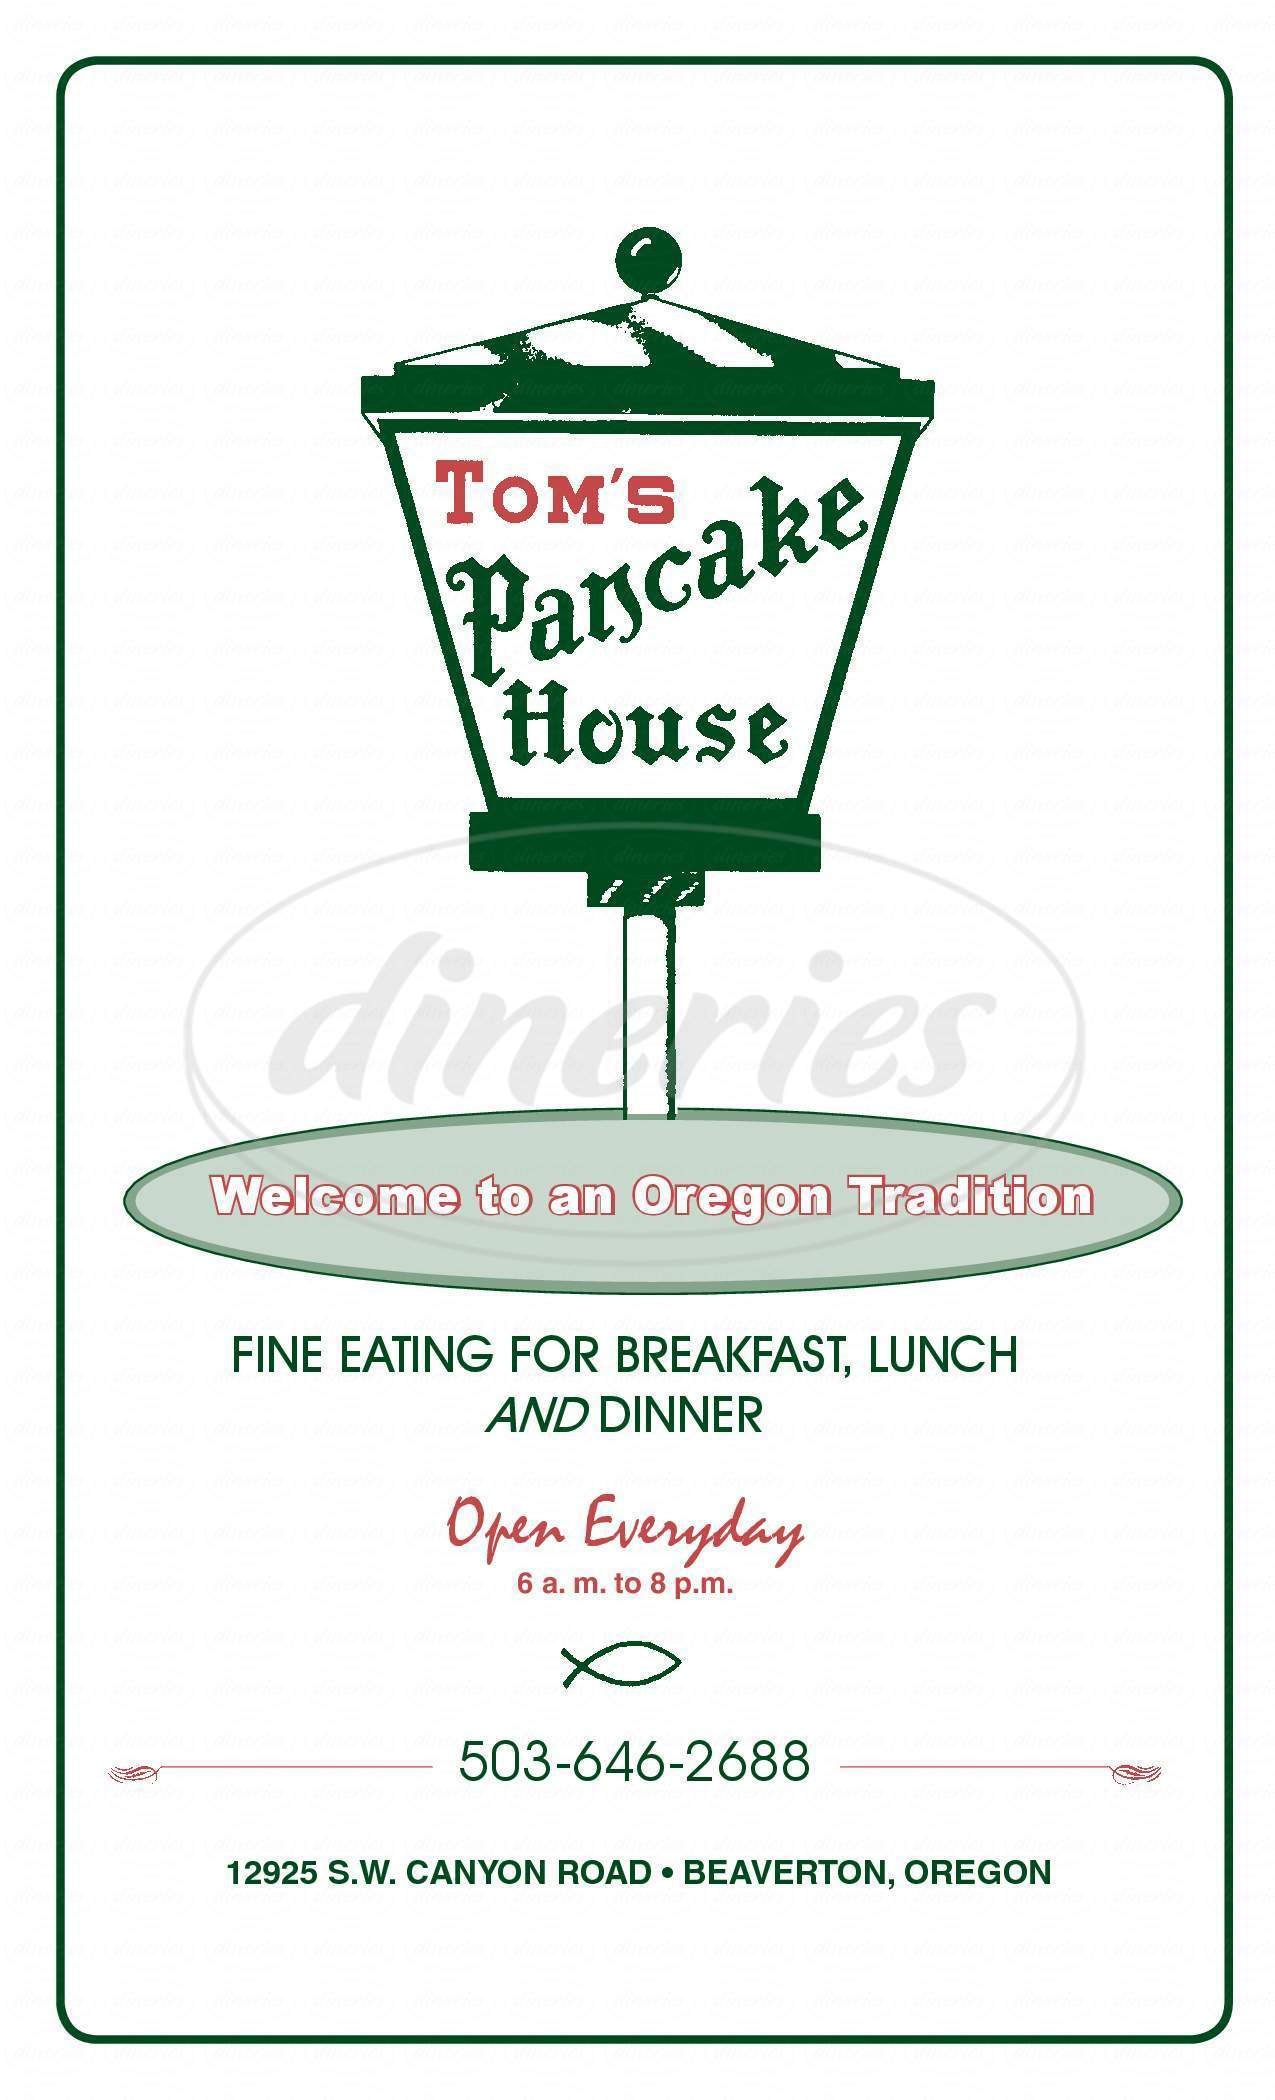 menu for Tom's Pancake House